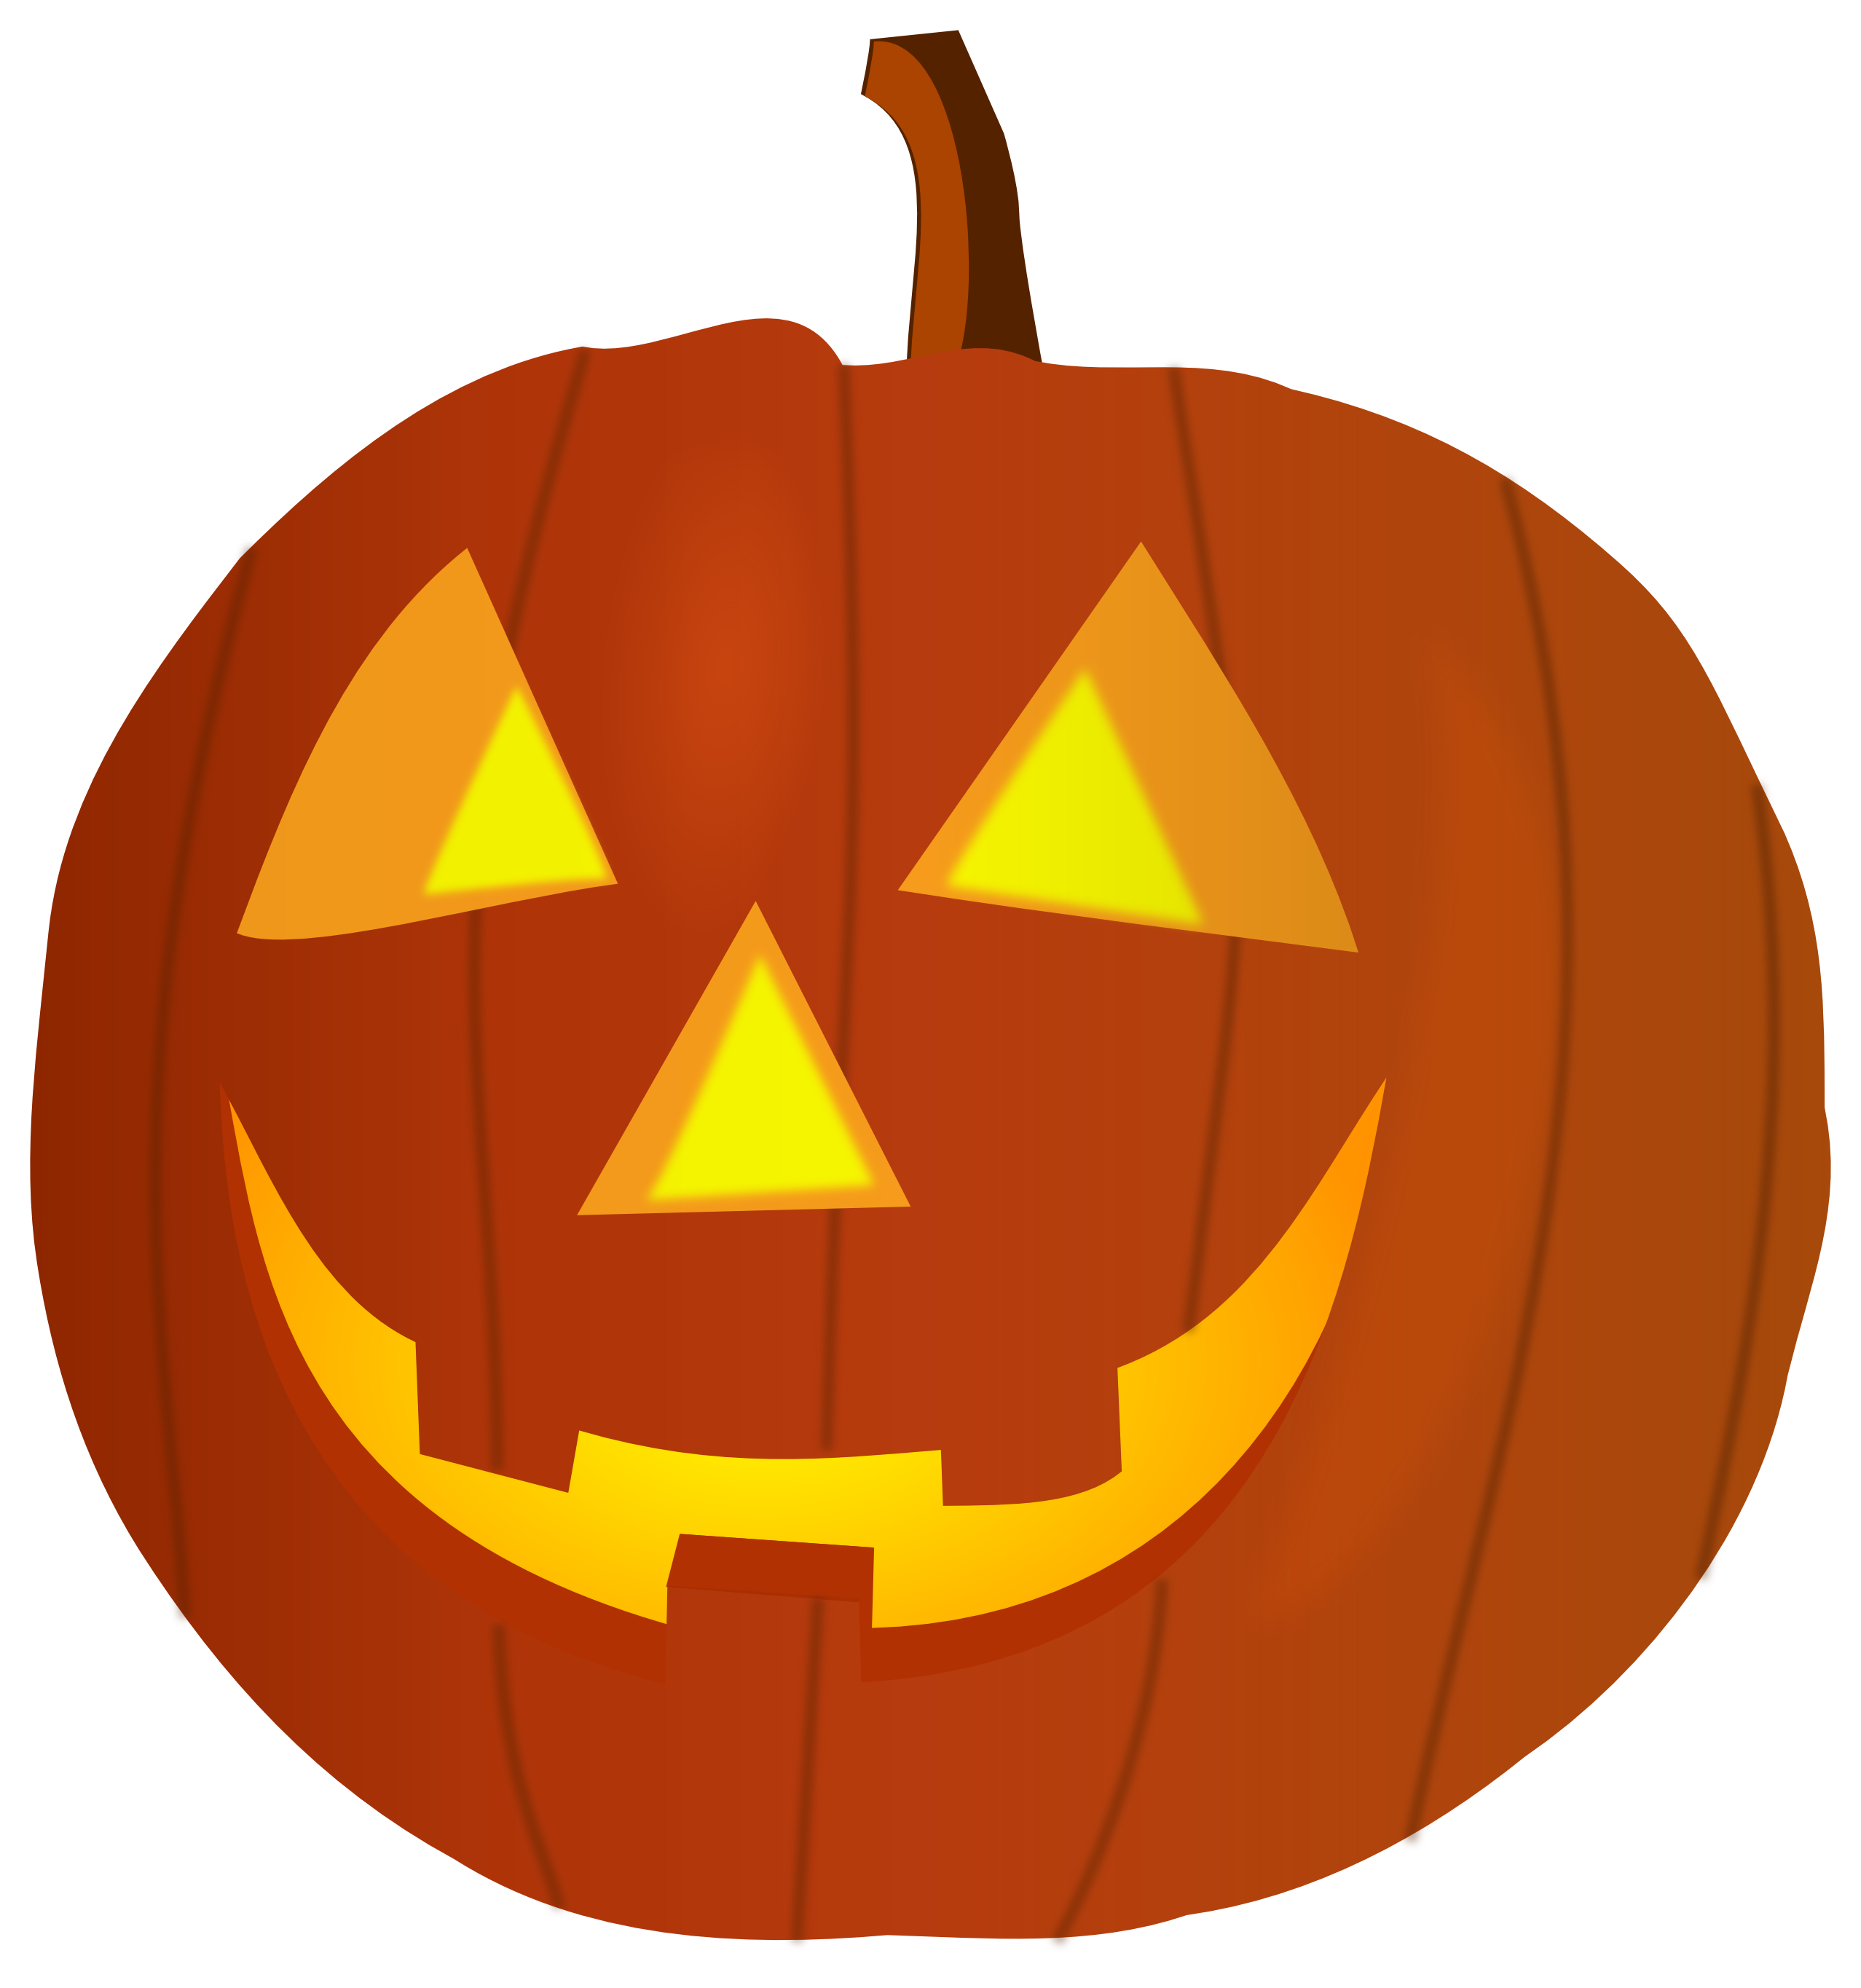 20 Halloween Pumpkin Clip Art Free Cliparts That You Can Download To